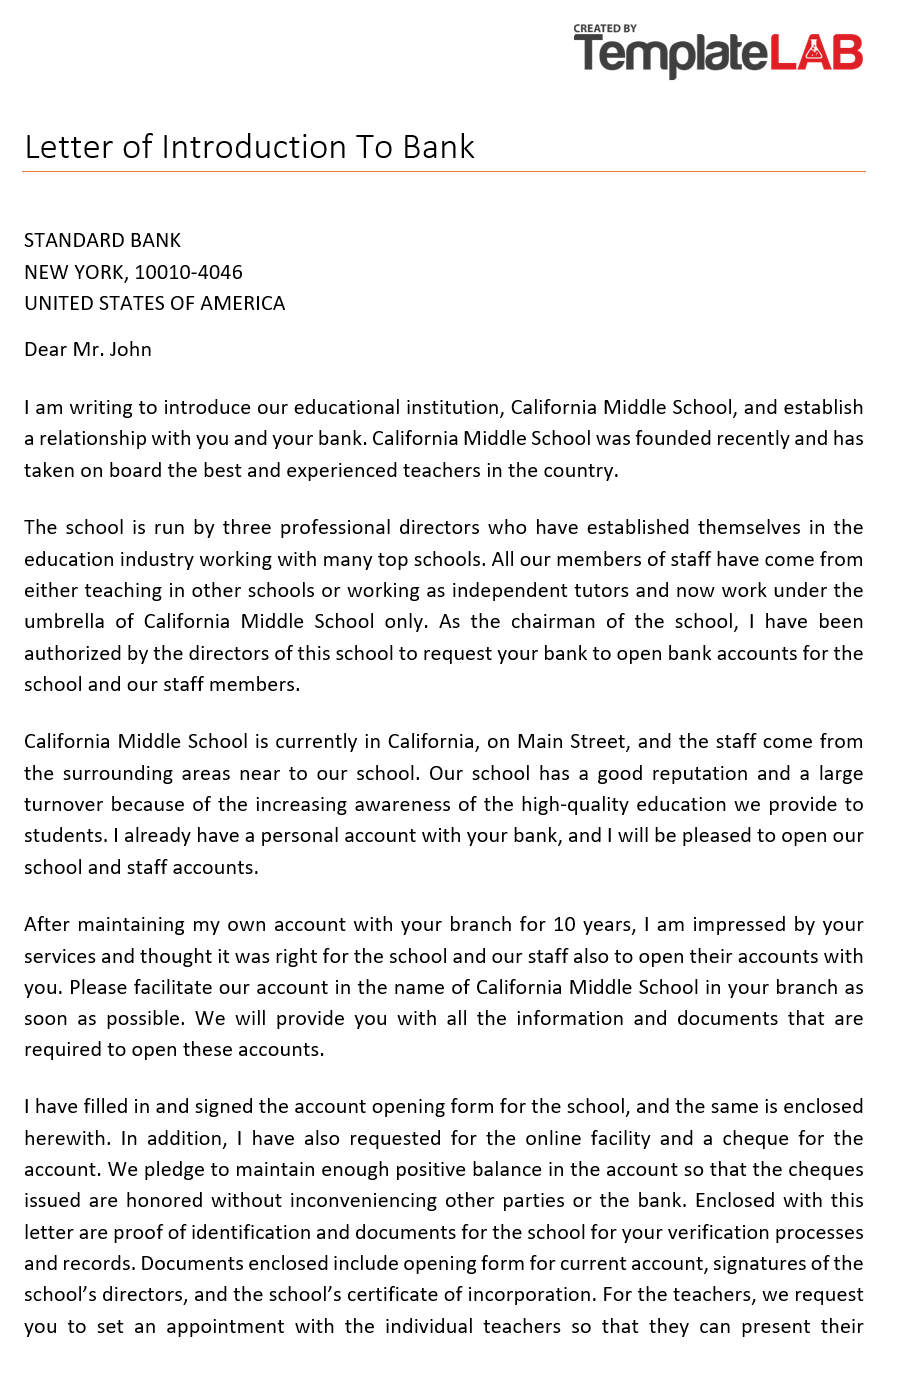 Free Letter of Introduction to Bank